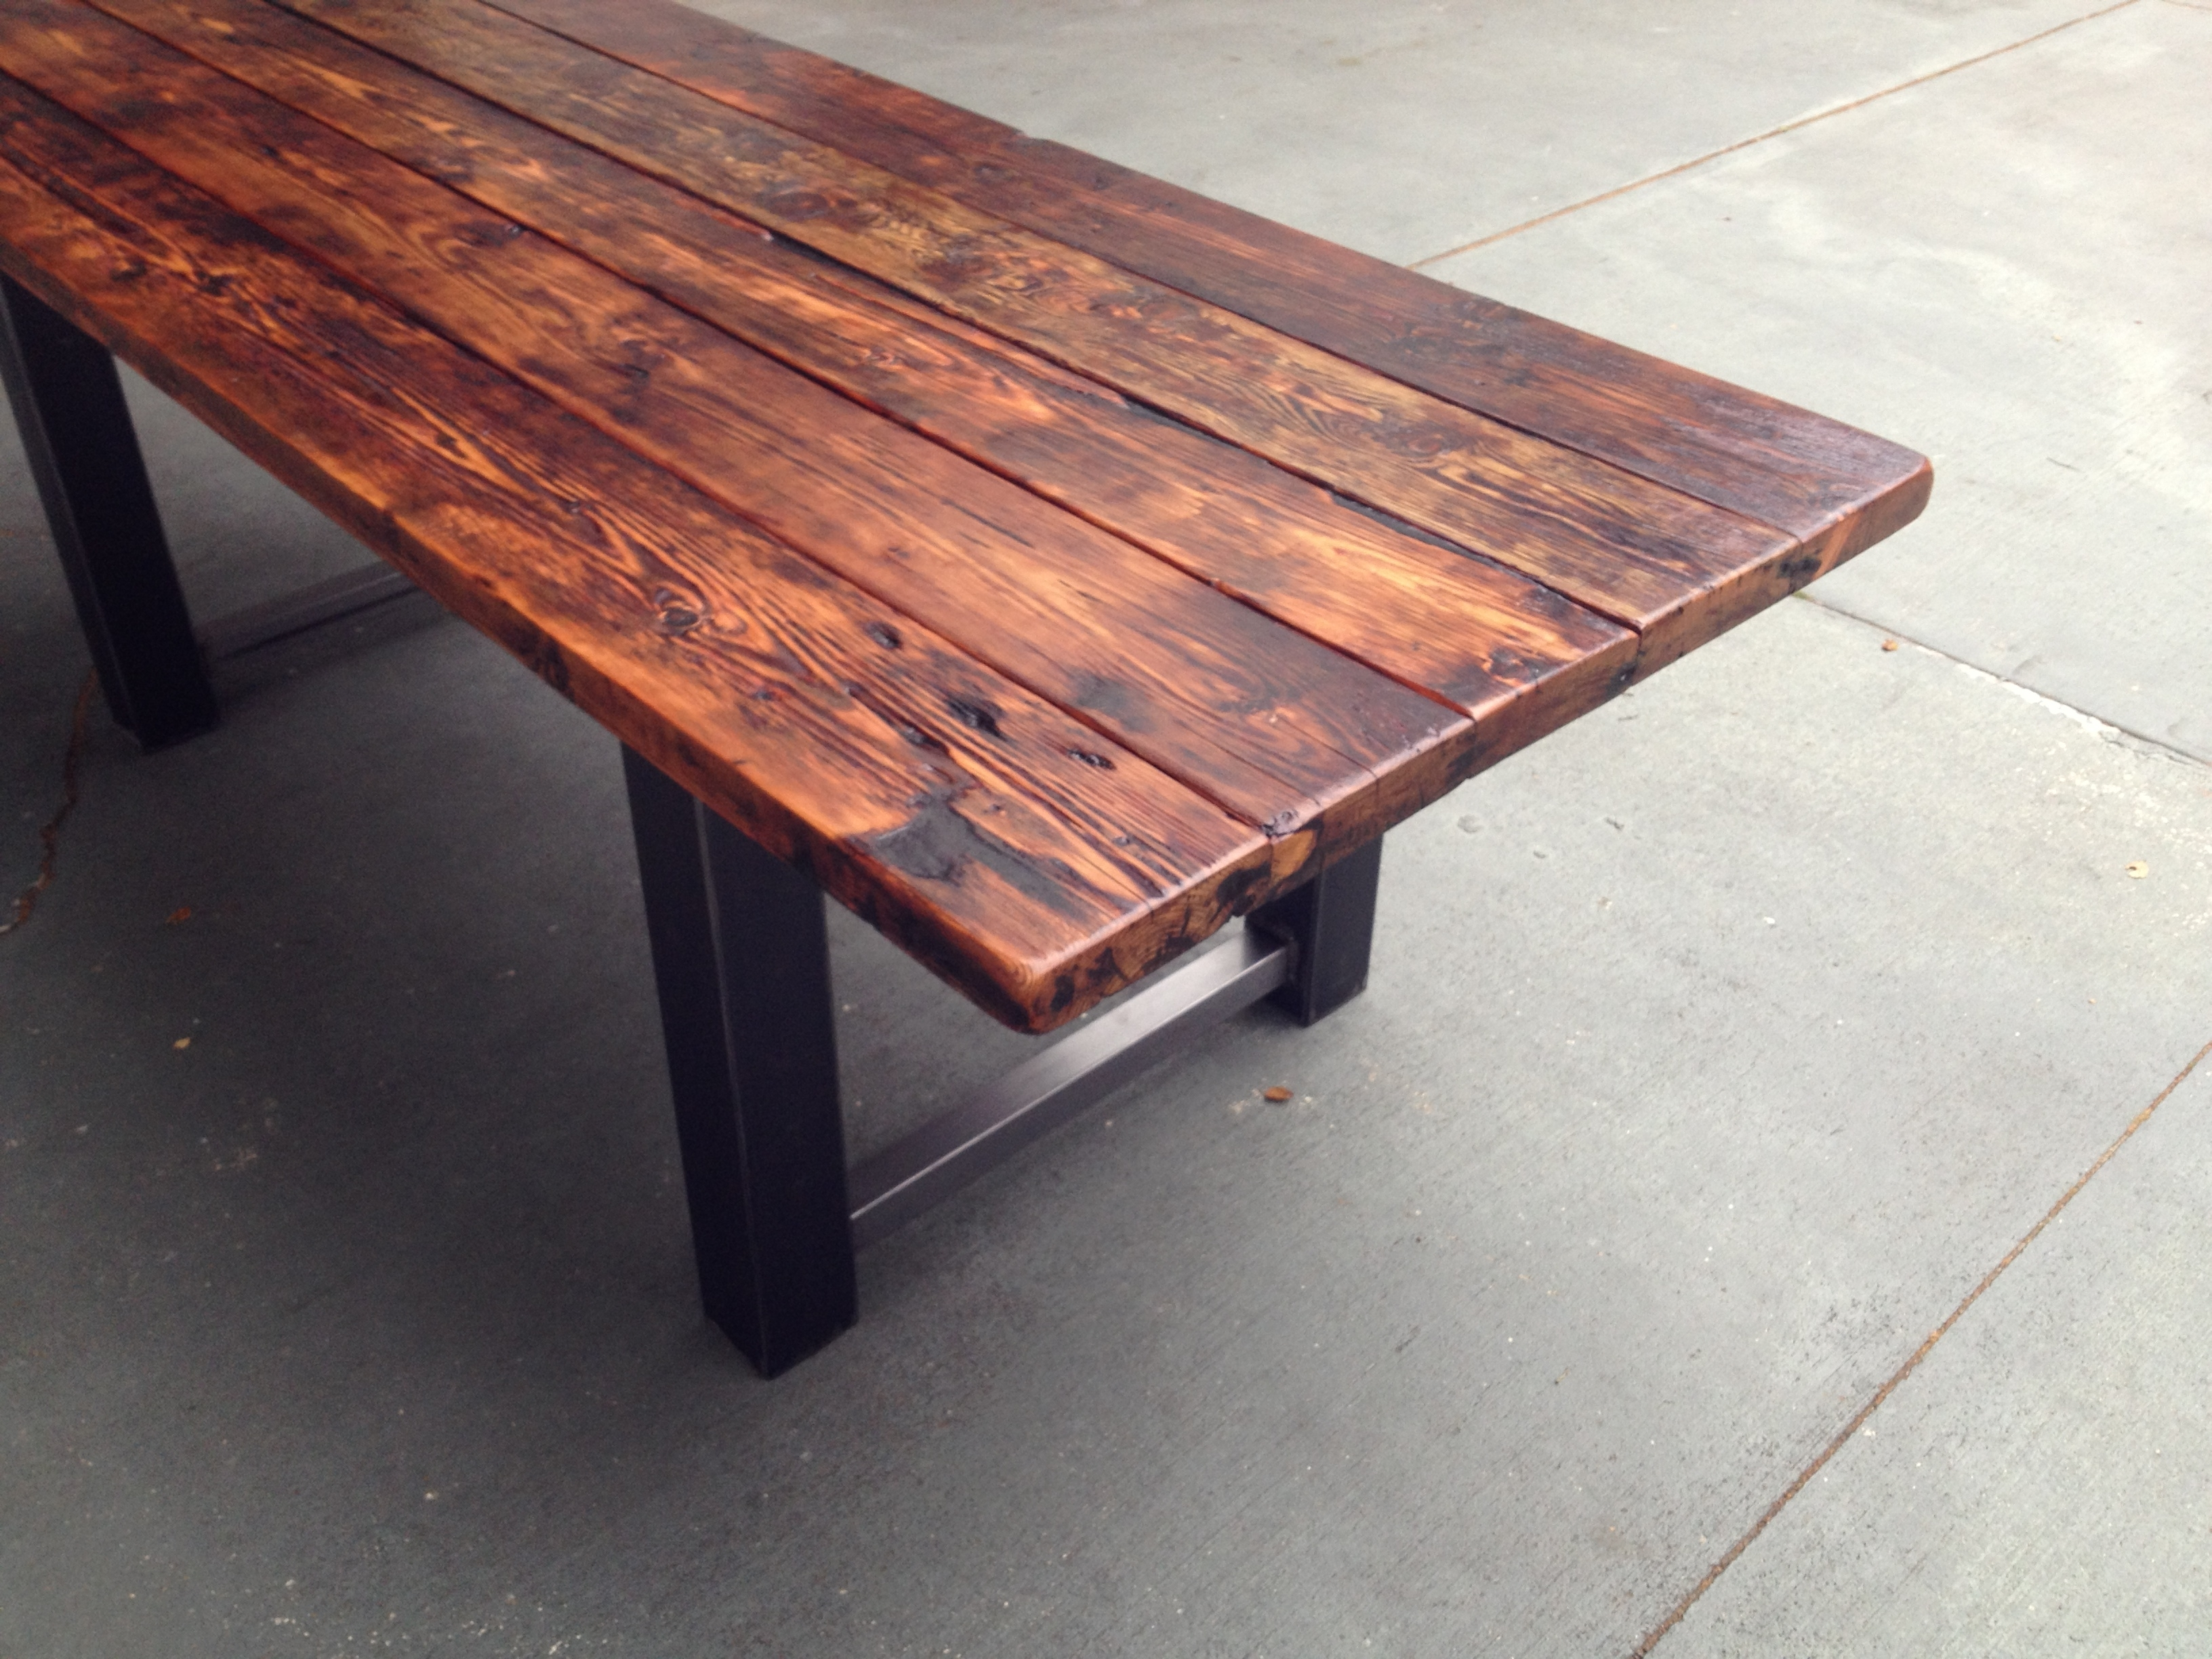 Craftsman Round Dining Tables With Regard To Current Reclaimed Wood And Steel Dining Table (View 10 of 25)